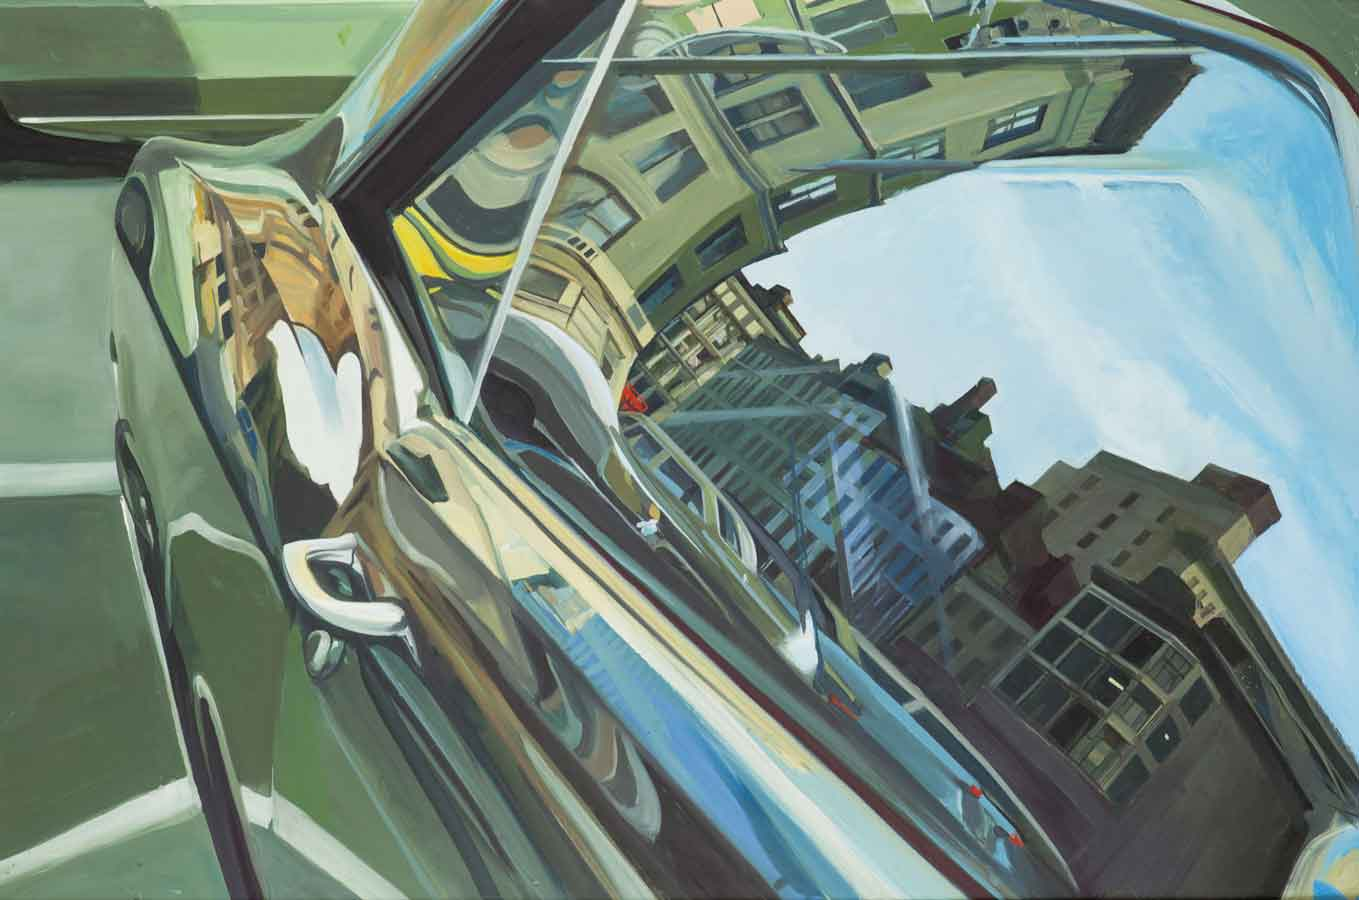 Richard Estes, Untitled (Car Reflection), 1967, oil on board. © Richard Estes, courtesy Marlborough Gallery, New York.